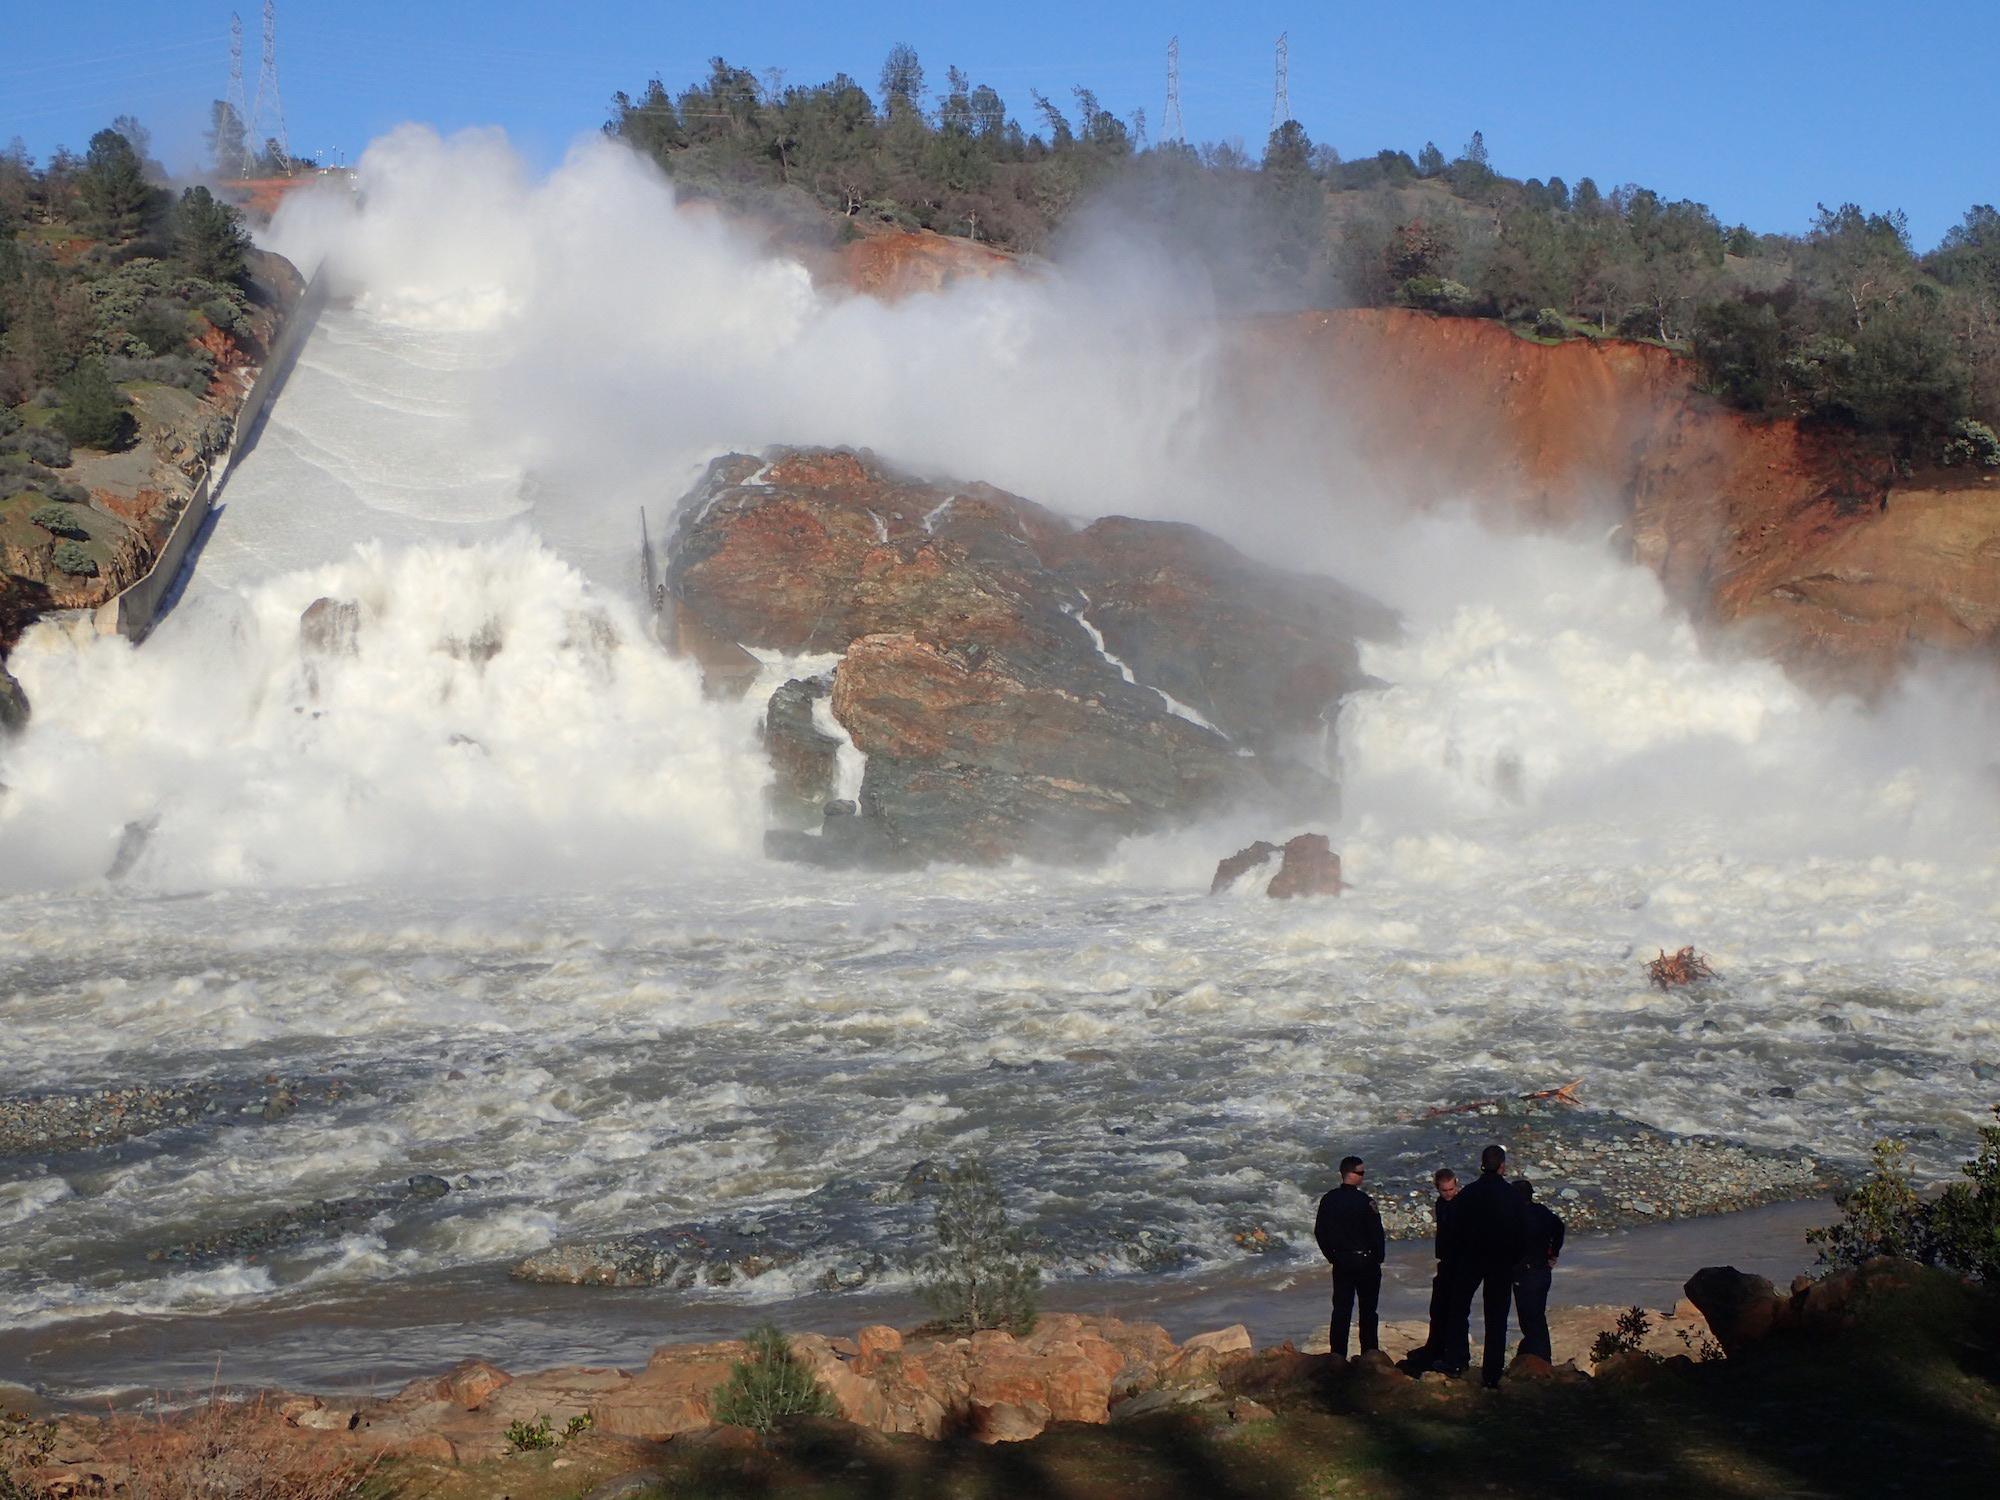 A Cal Fire crew watches as water roars down Oroville's main spillway at 100,000 cubic-ft. per second.